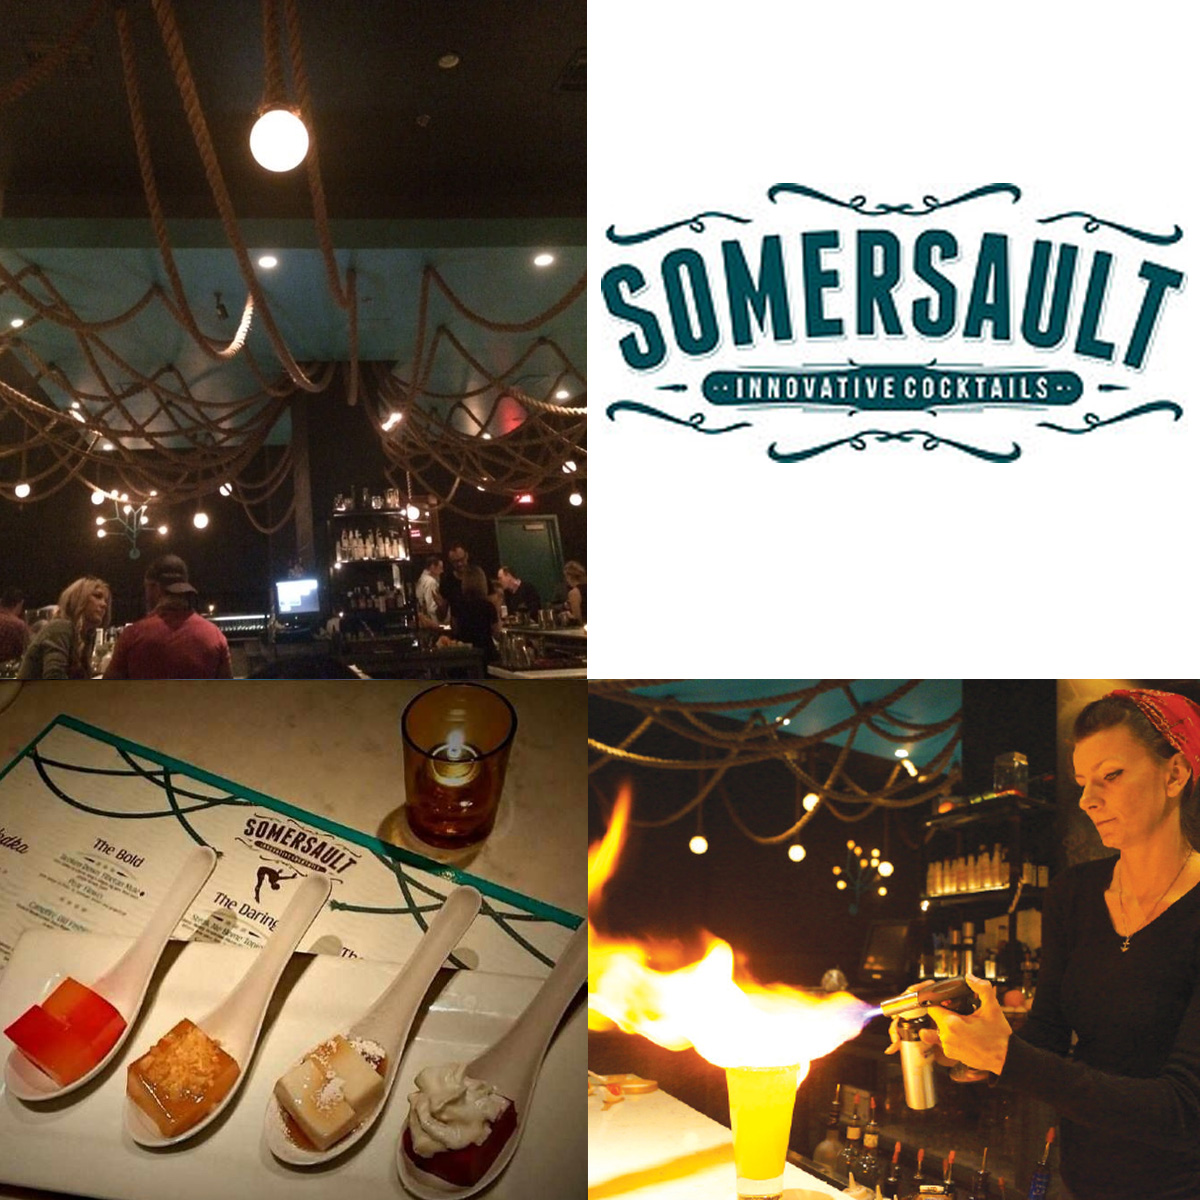 somersault-cocktails